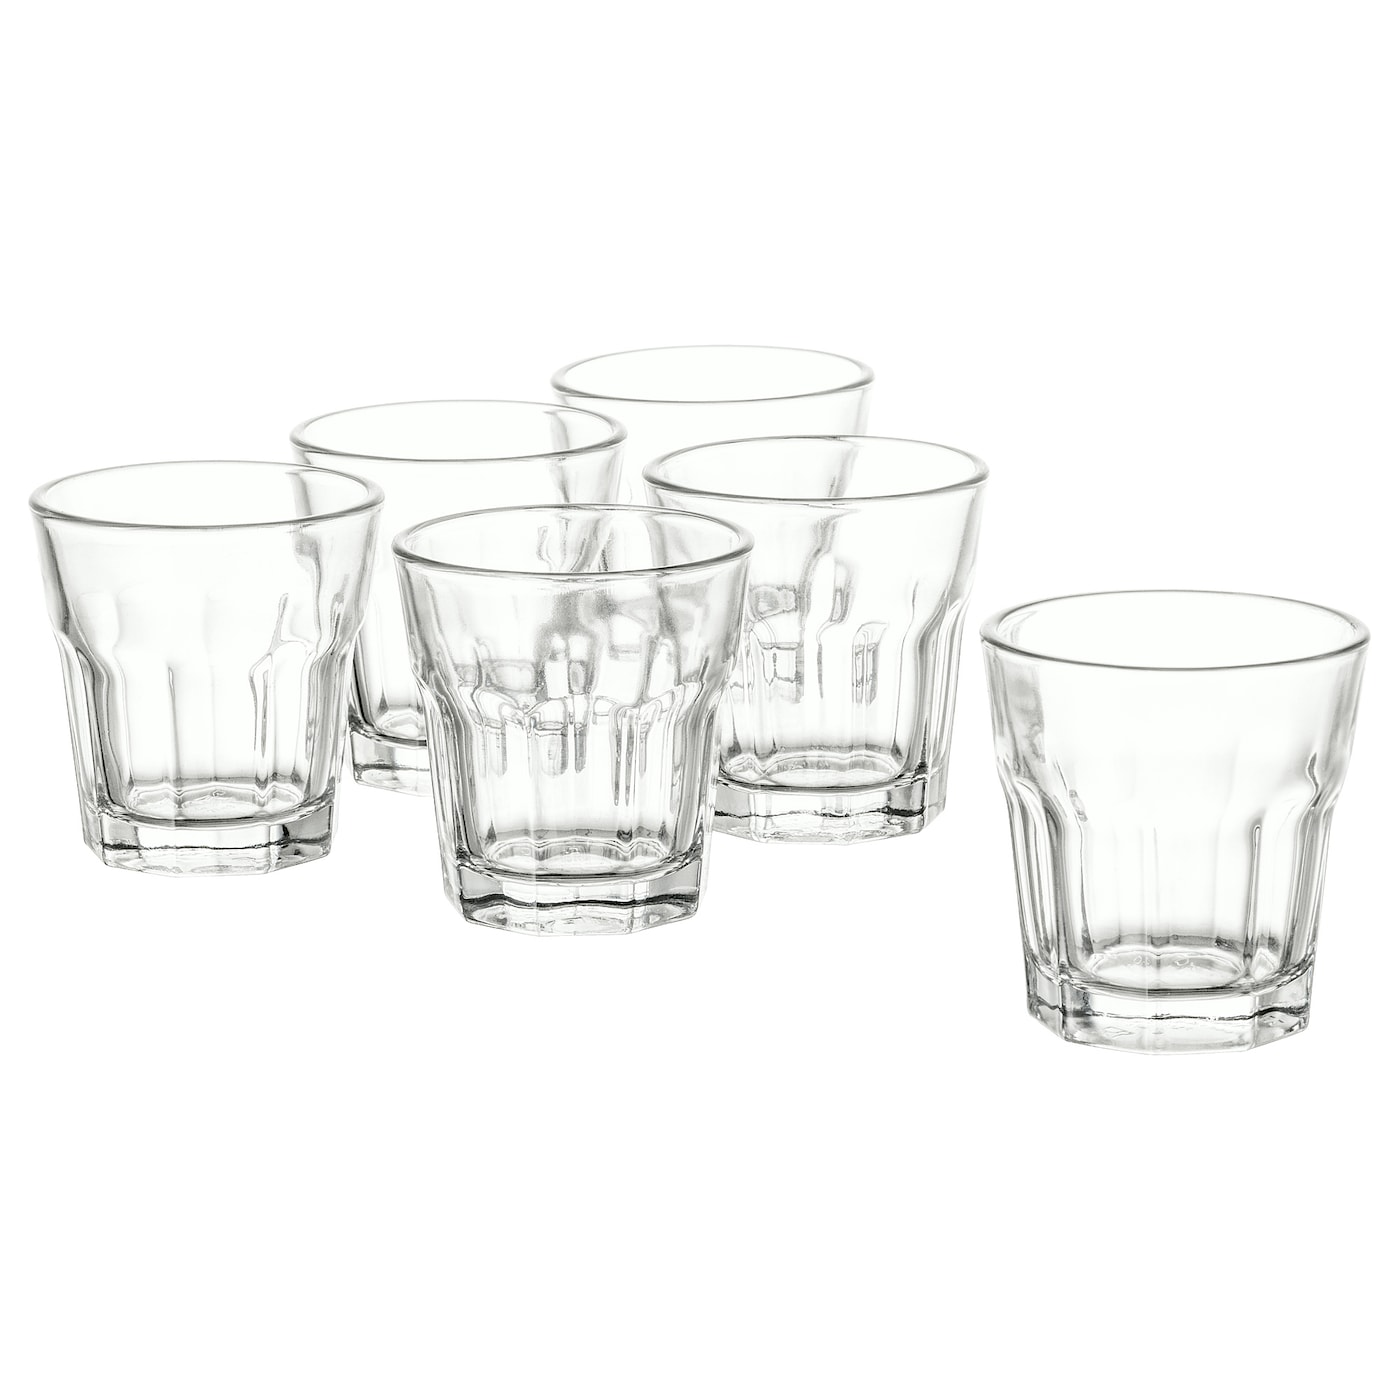 IKEA POKAL snaps glass